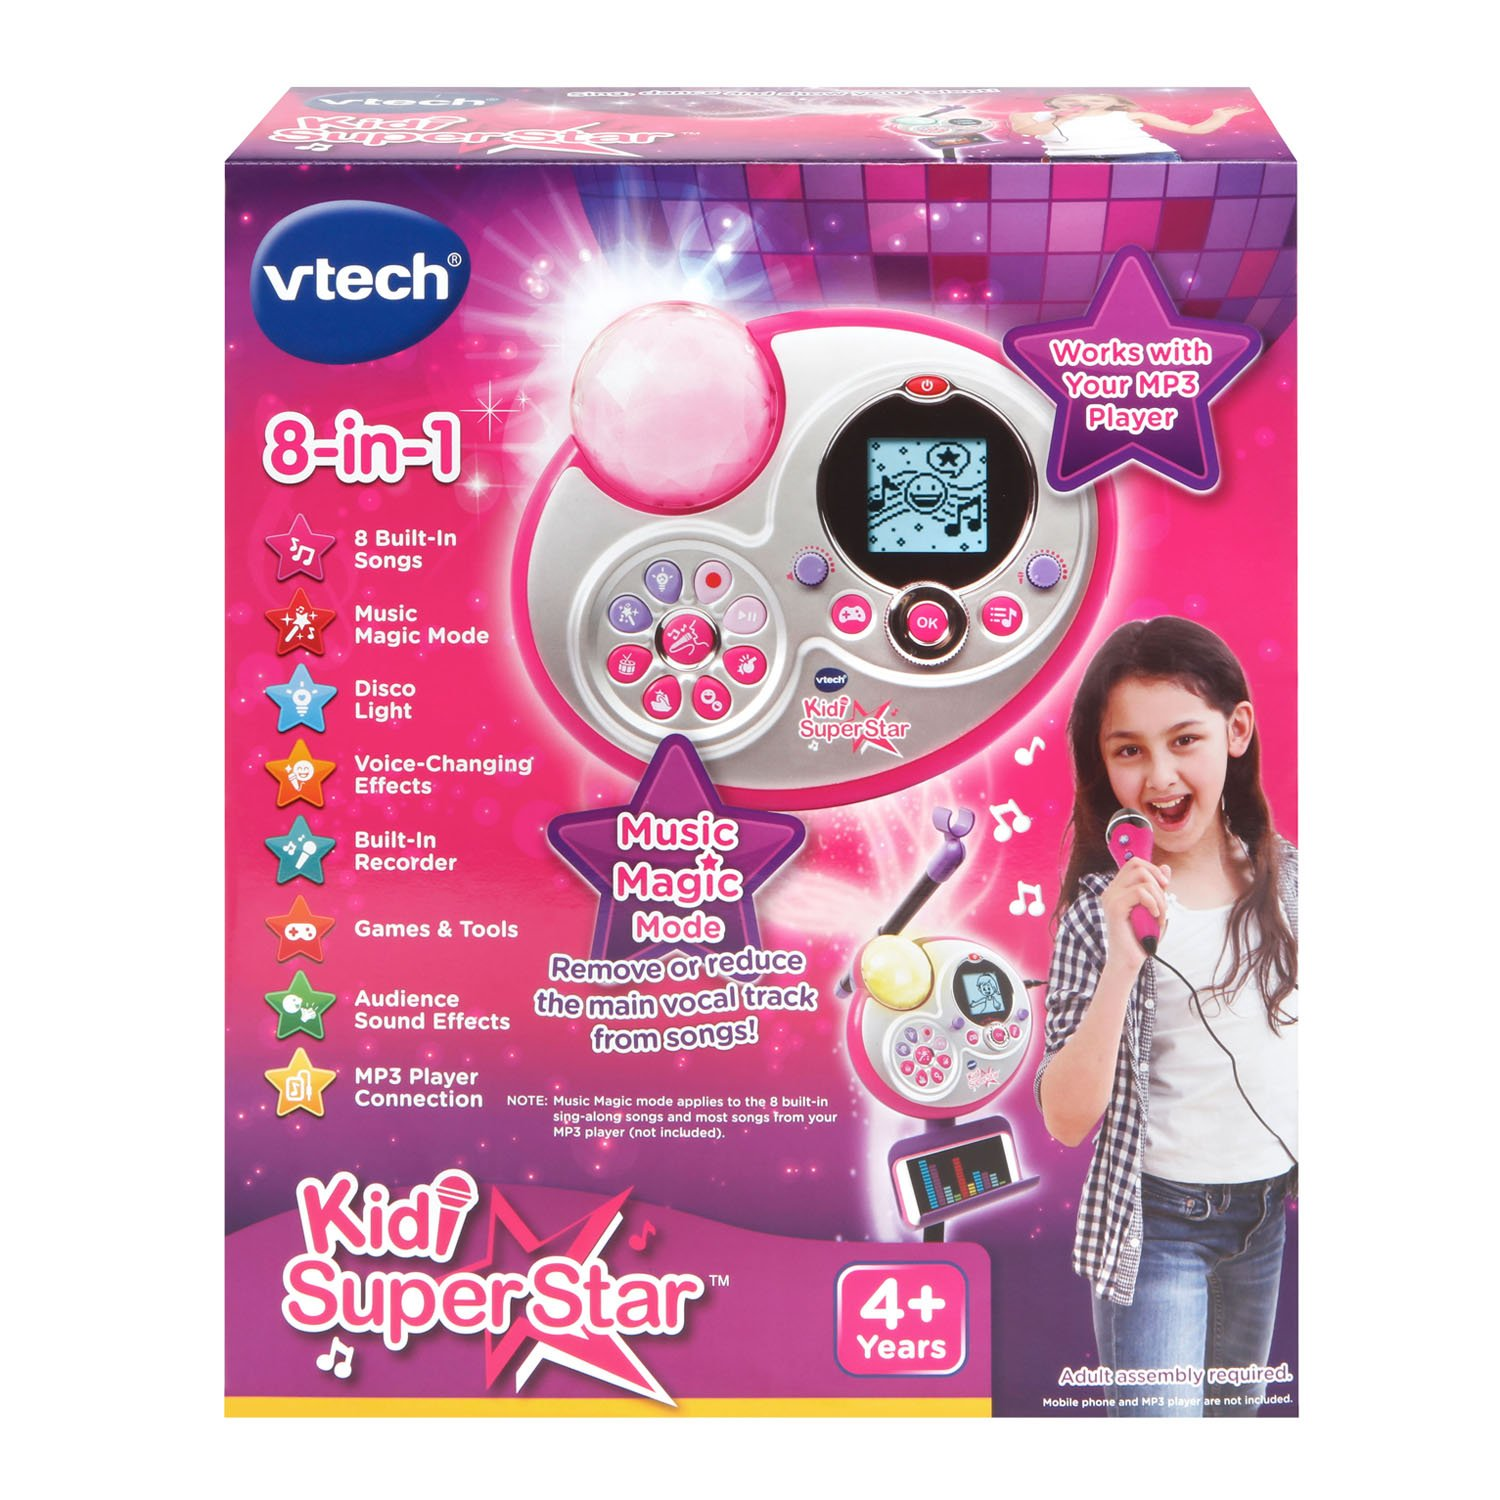 VTech Kidi Super Star Karaoke System with Mic Stand Amazon Exclusive by VTech (Image #7)